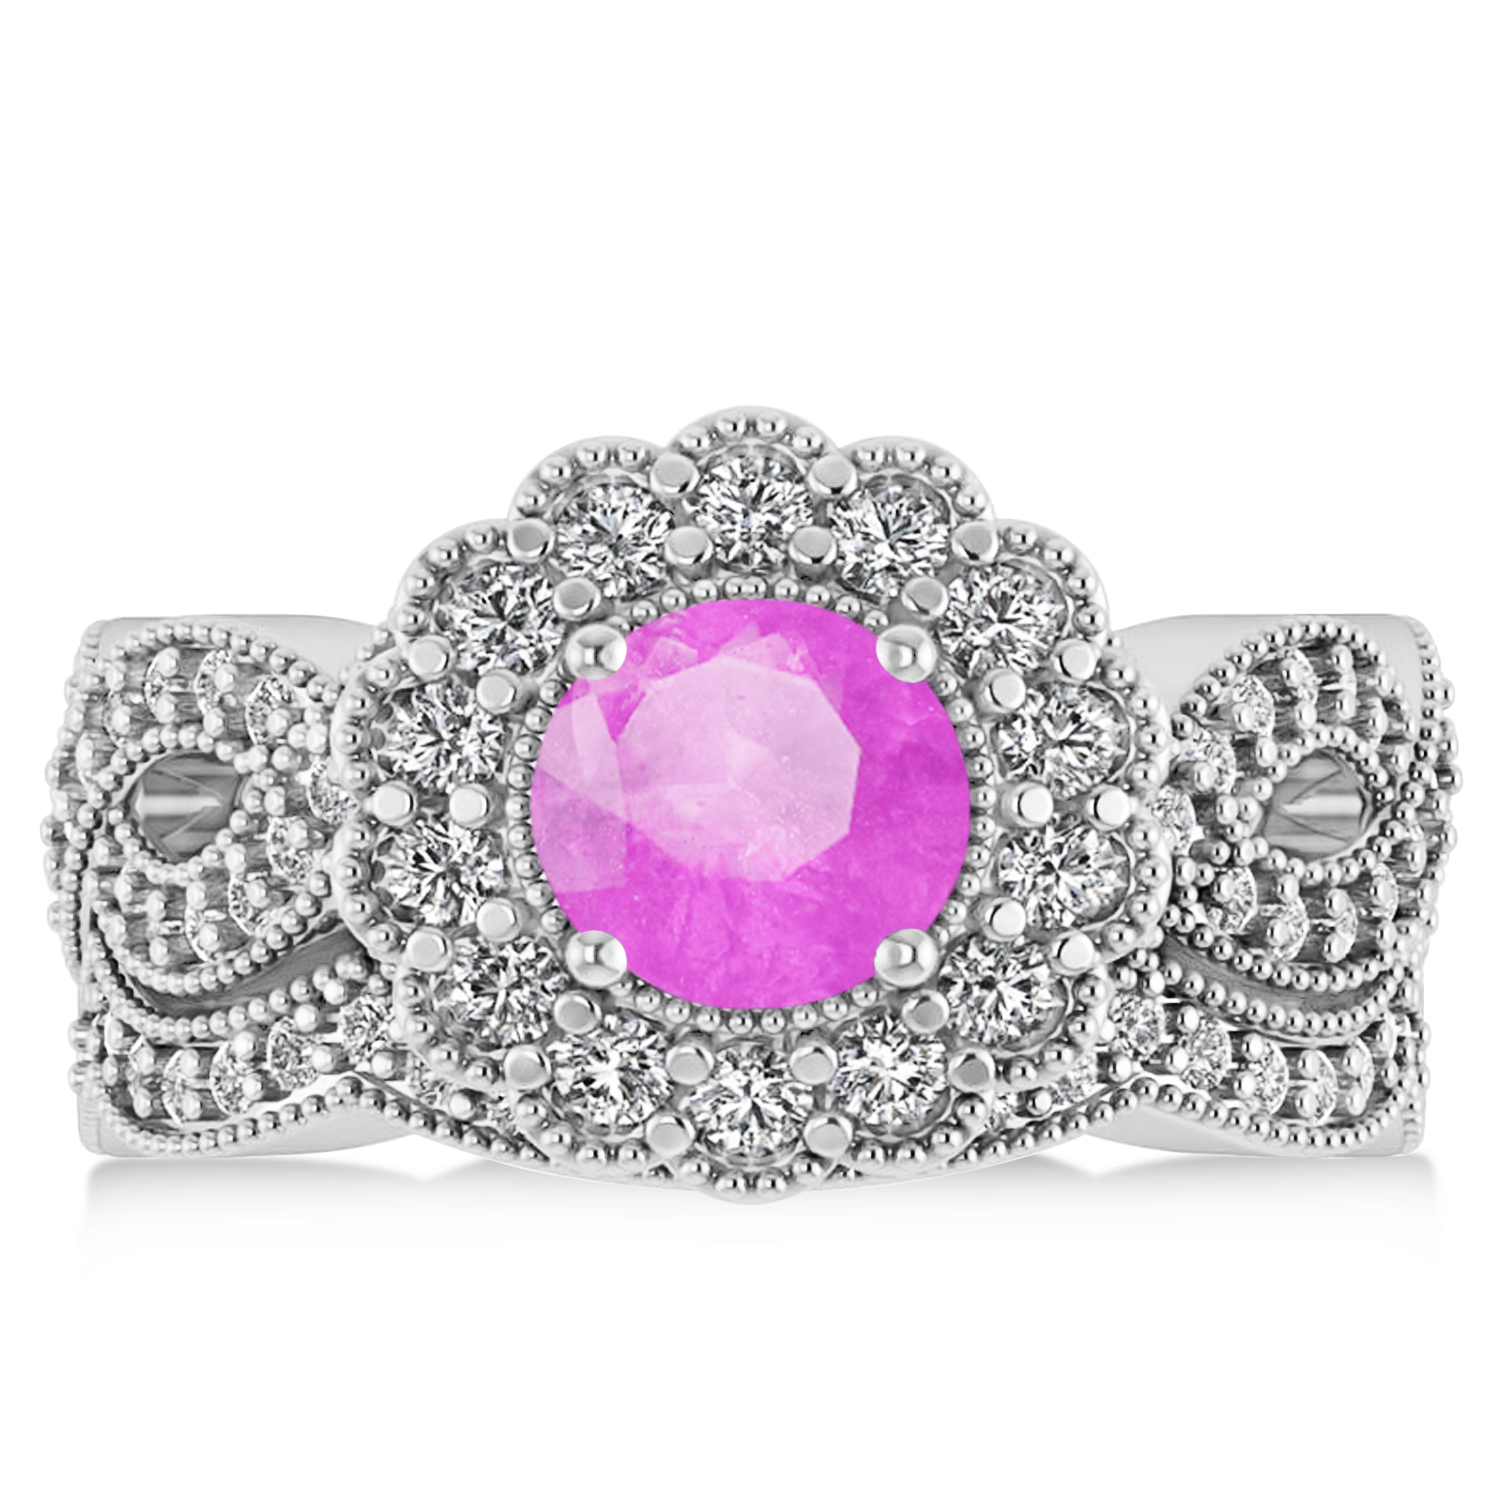 Diamond & Pink Sapphire Flower Halo Bridal Set 14k White Gold 2.22ct